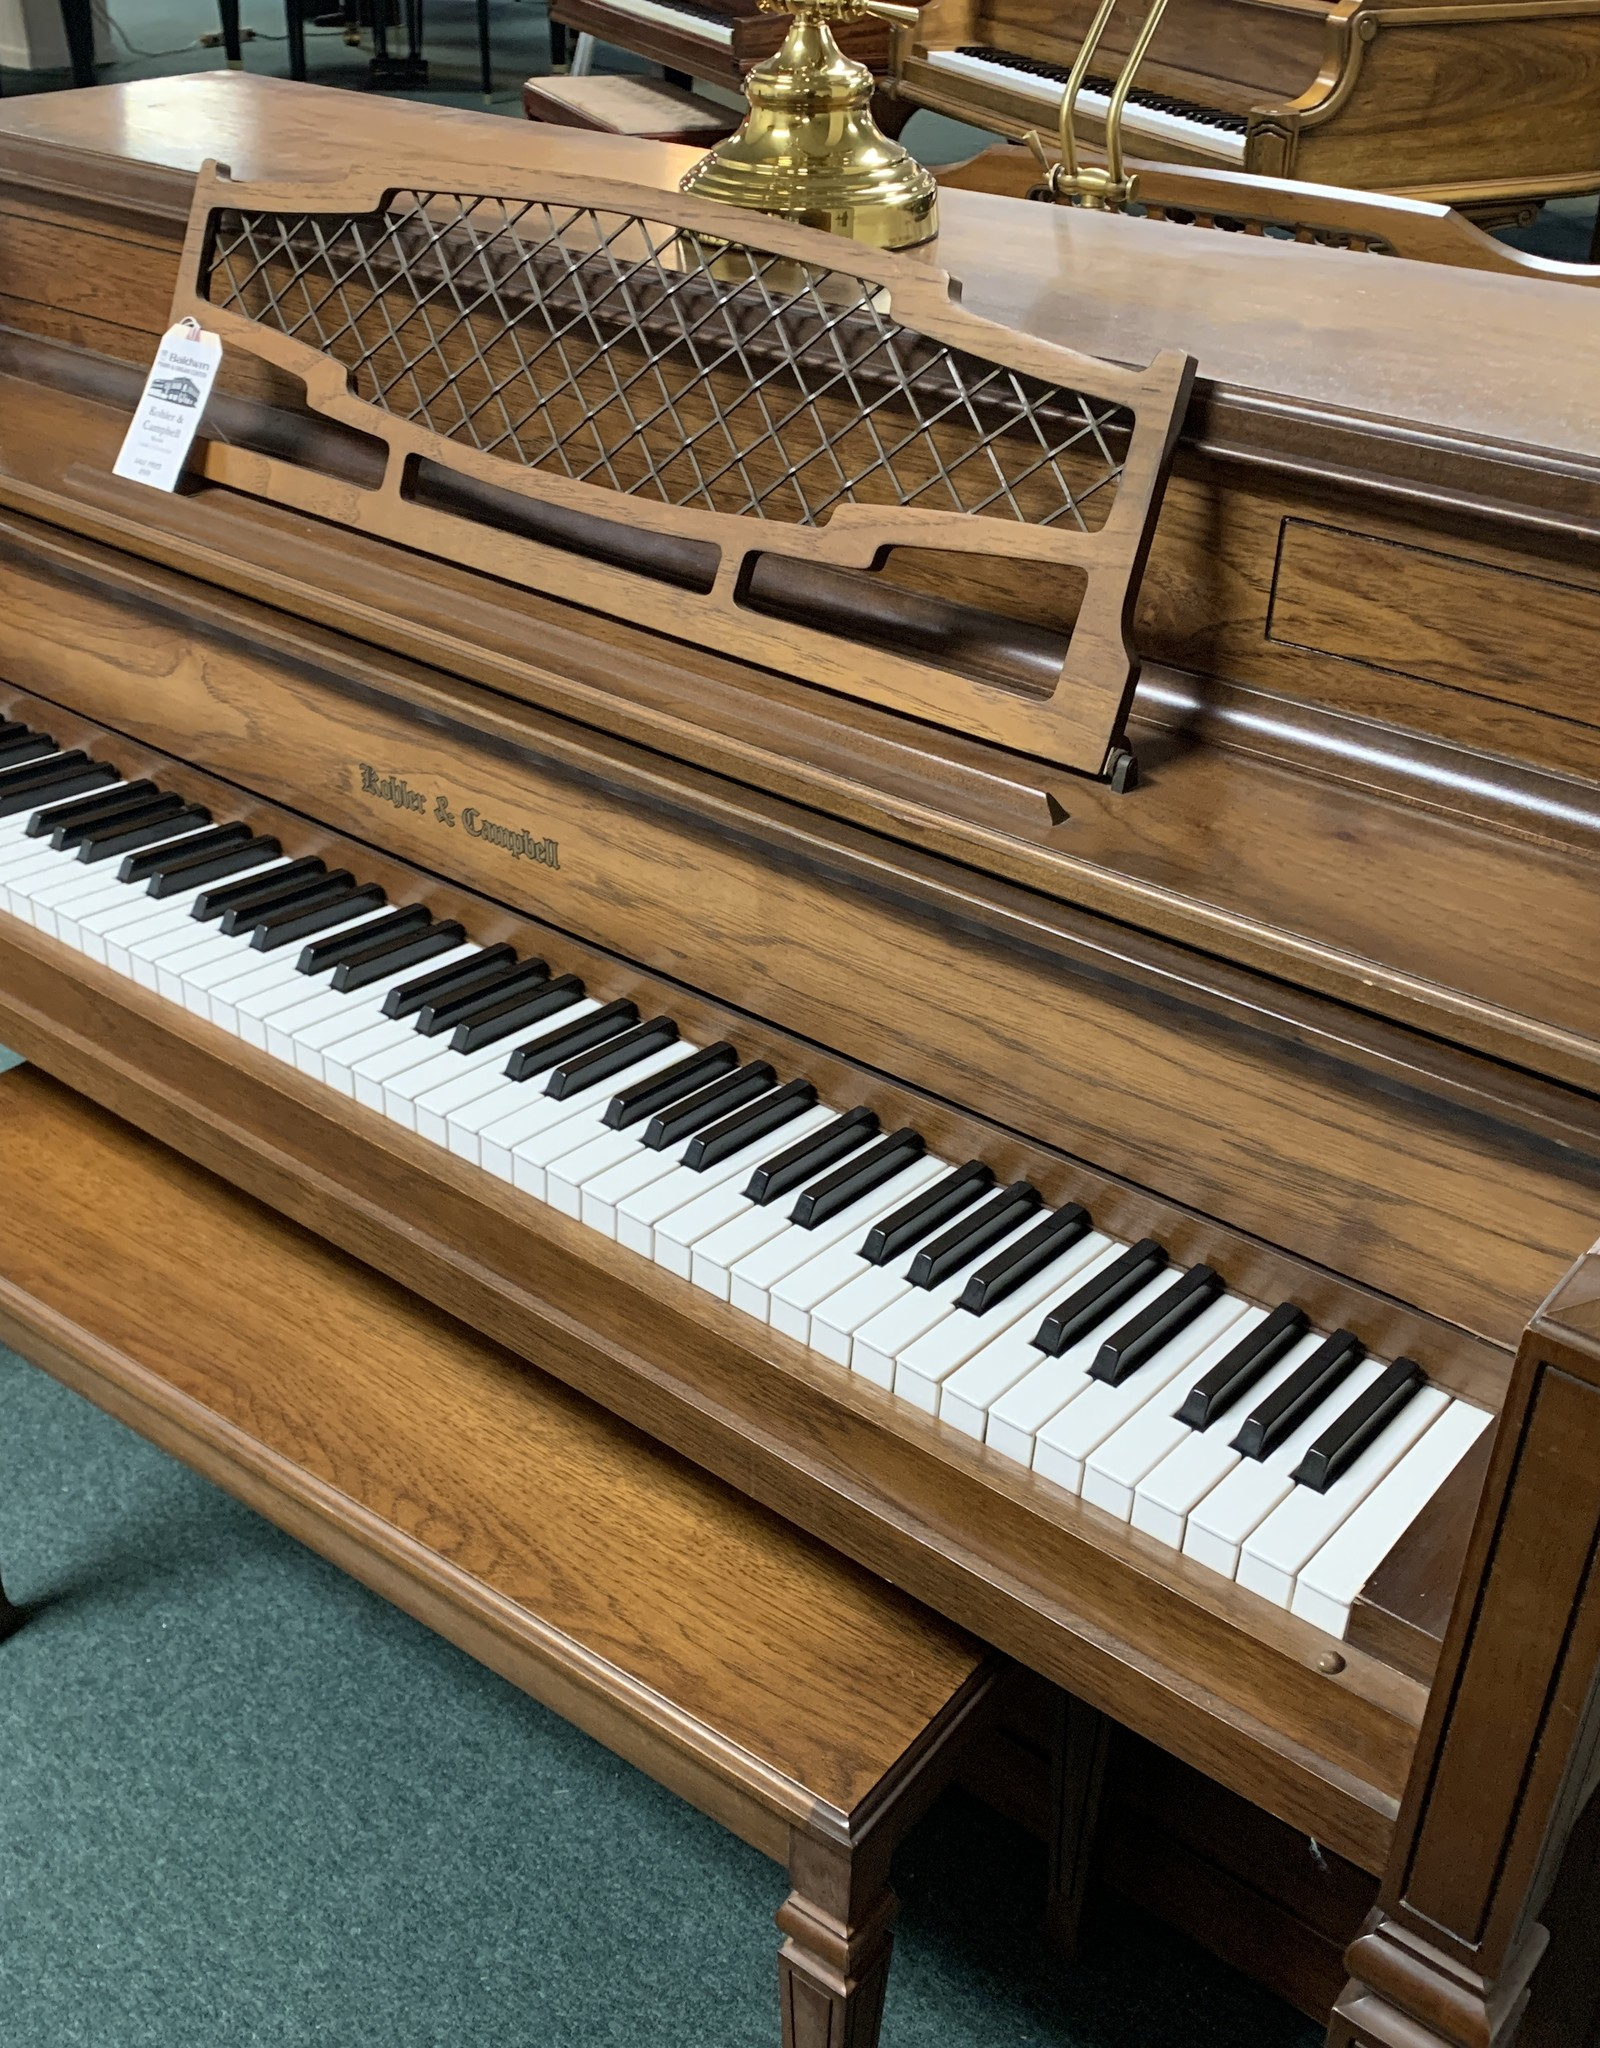 Kohler & Campbell Kohler & Campbell Italian Provincial Console Piano (Pre-owned)